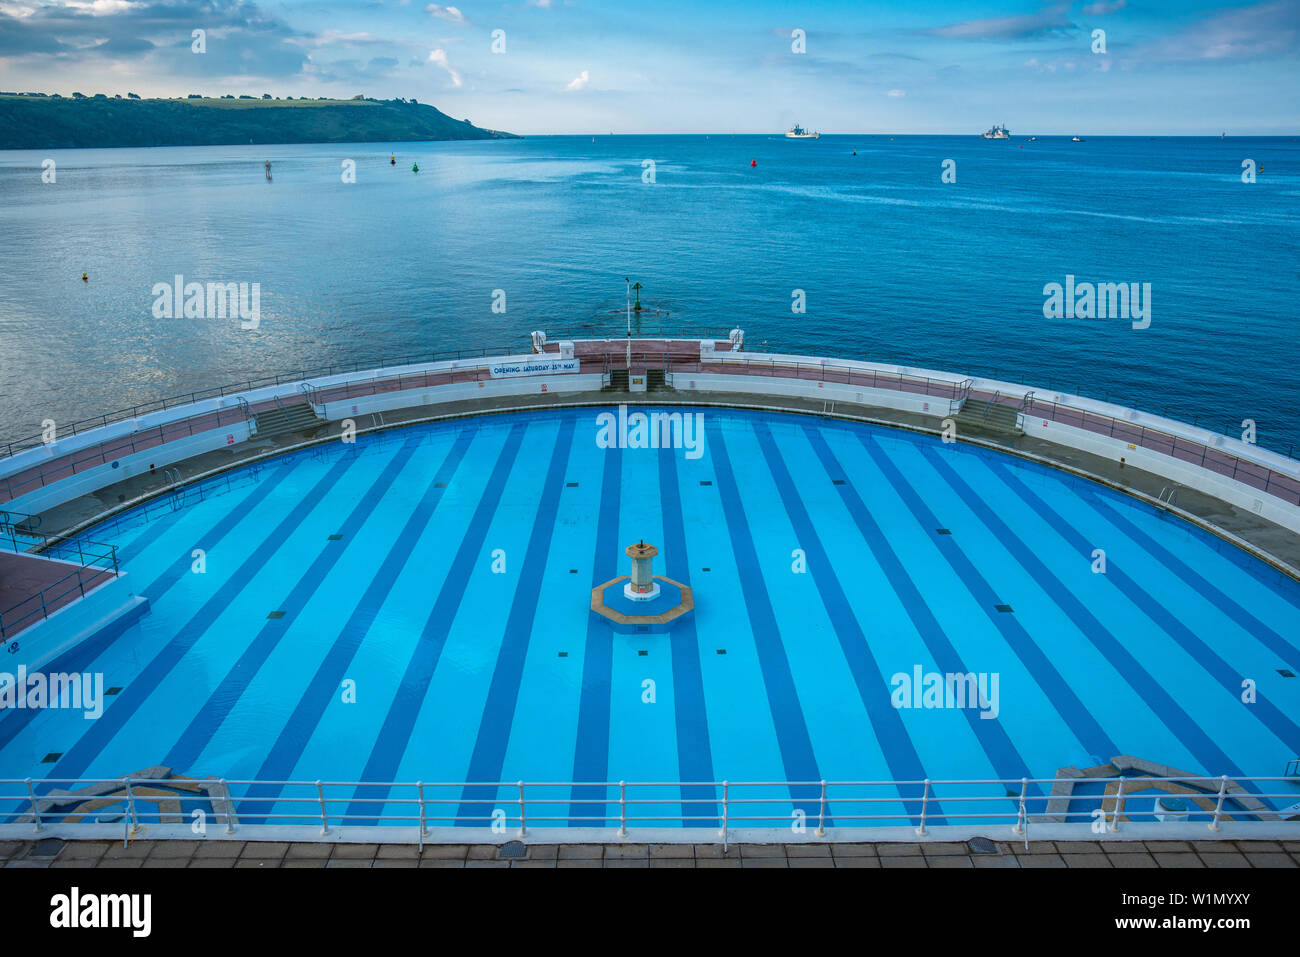 tinside-pool-at-plymouth-hoe-on-the-seaf